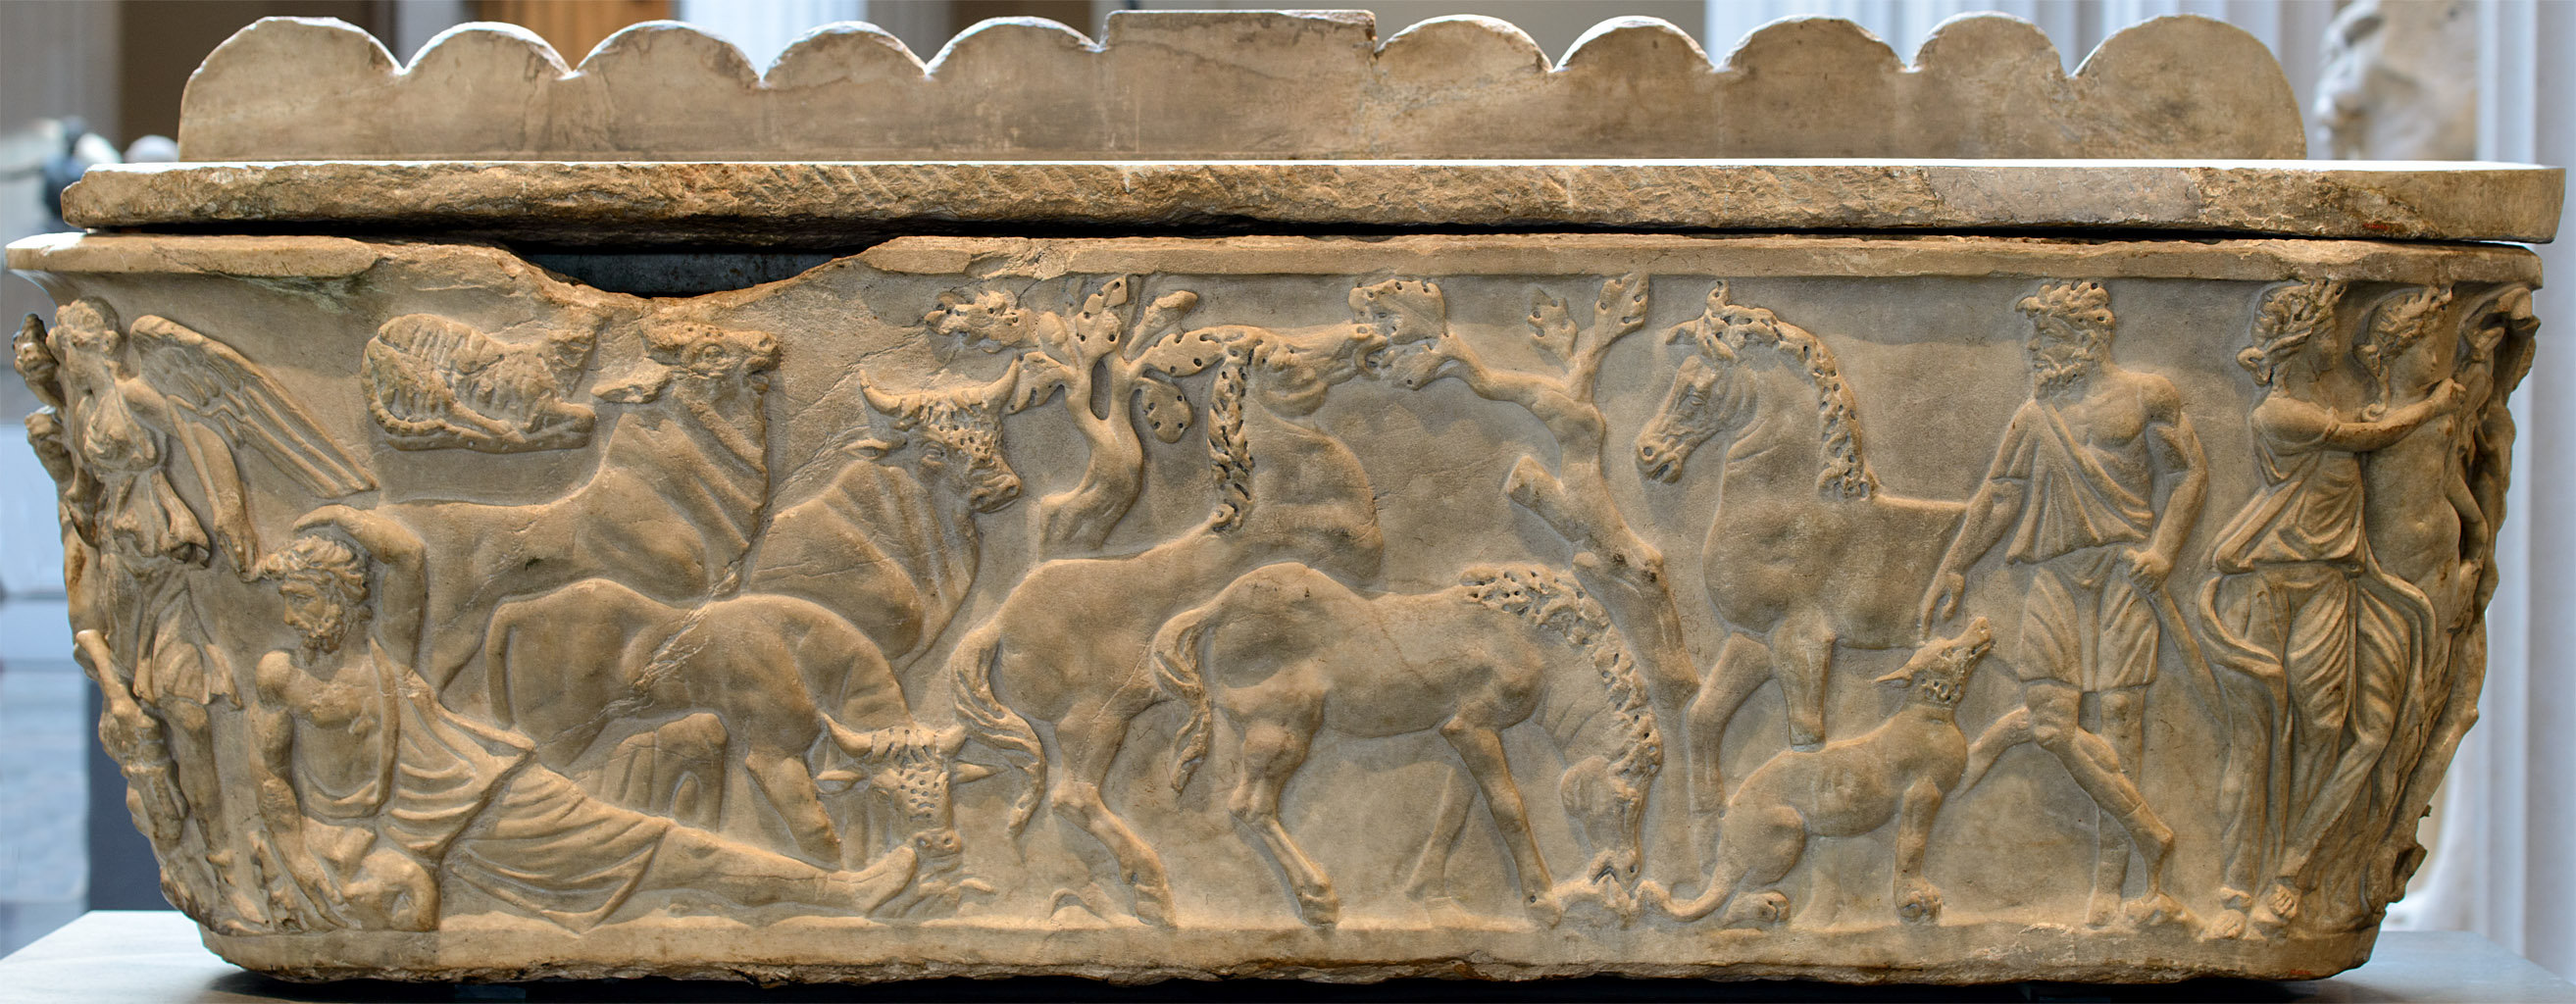 Sarcophagus with a myth of Selene and Endymion. The rear view. Marble. Early 3rd cent. CE. Inv. No. 47.100.4a, b. New York, the Metropolitan Museum of Art